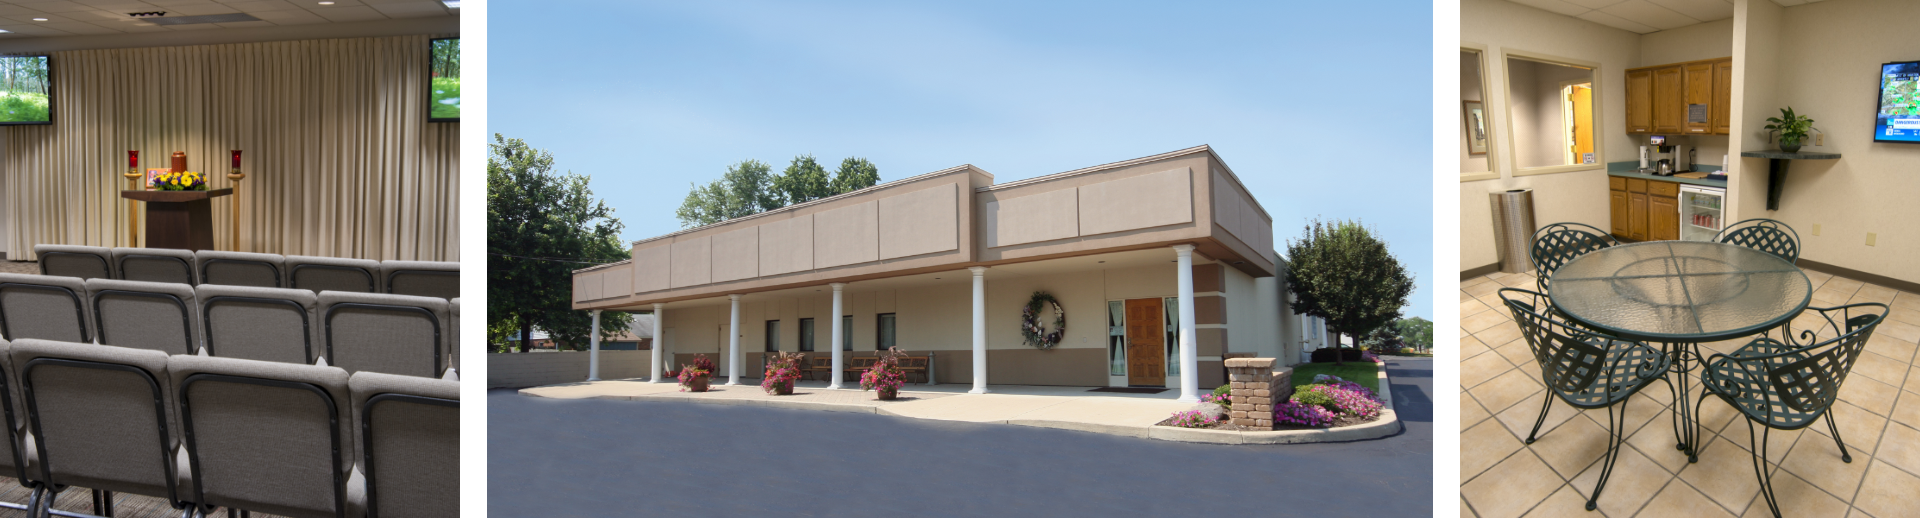 Funeral-Home-South-Dayton-OH